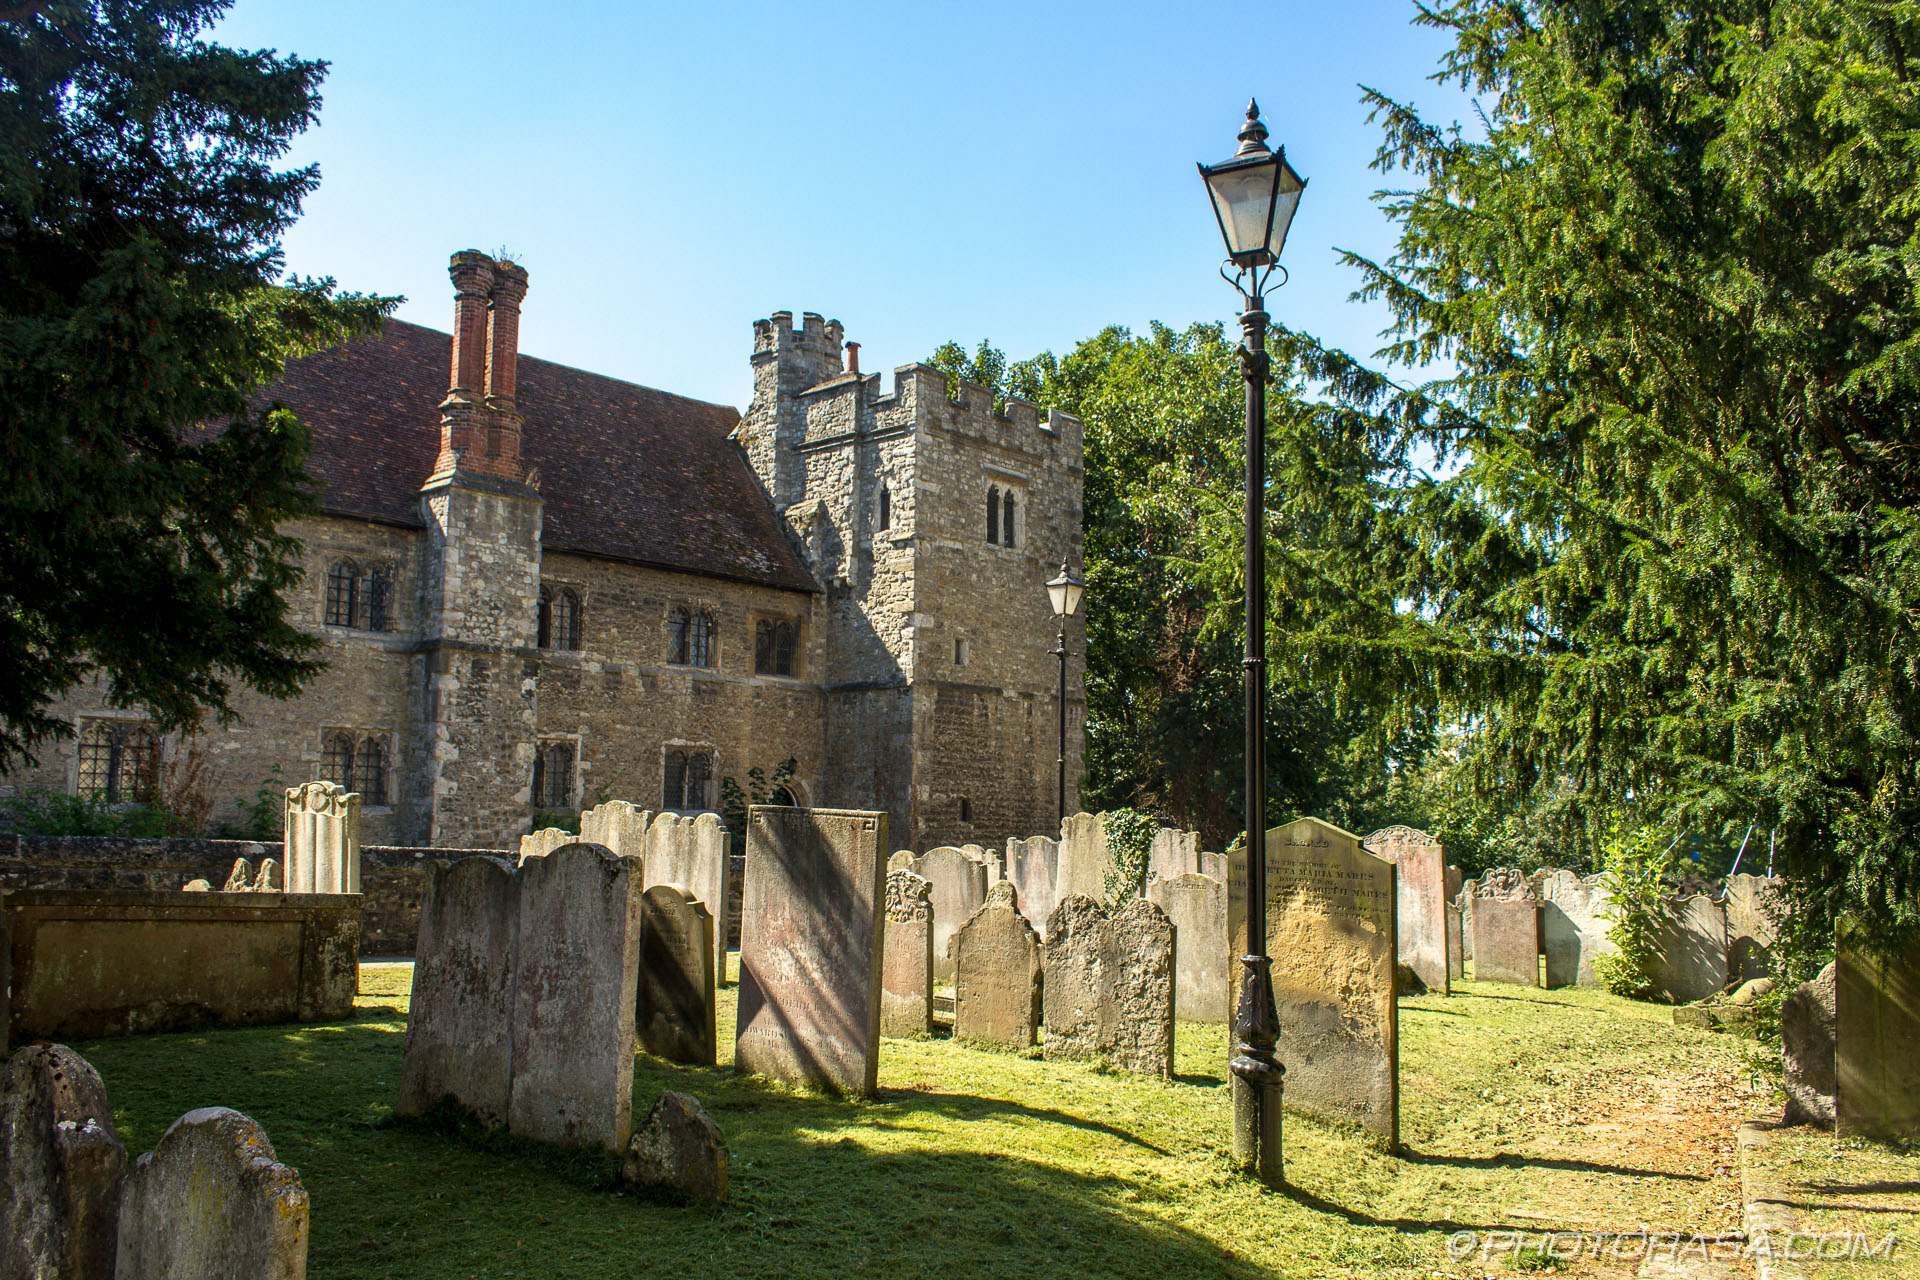 https://photorasa.com/inside-all-saints-church-in-maidstone/view-of-old-maidstone-college-from-all-saints-church/